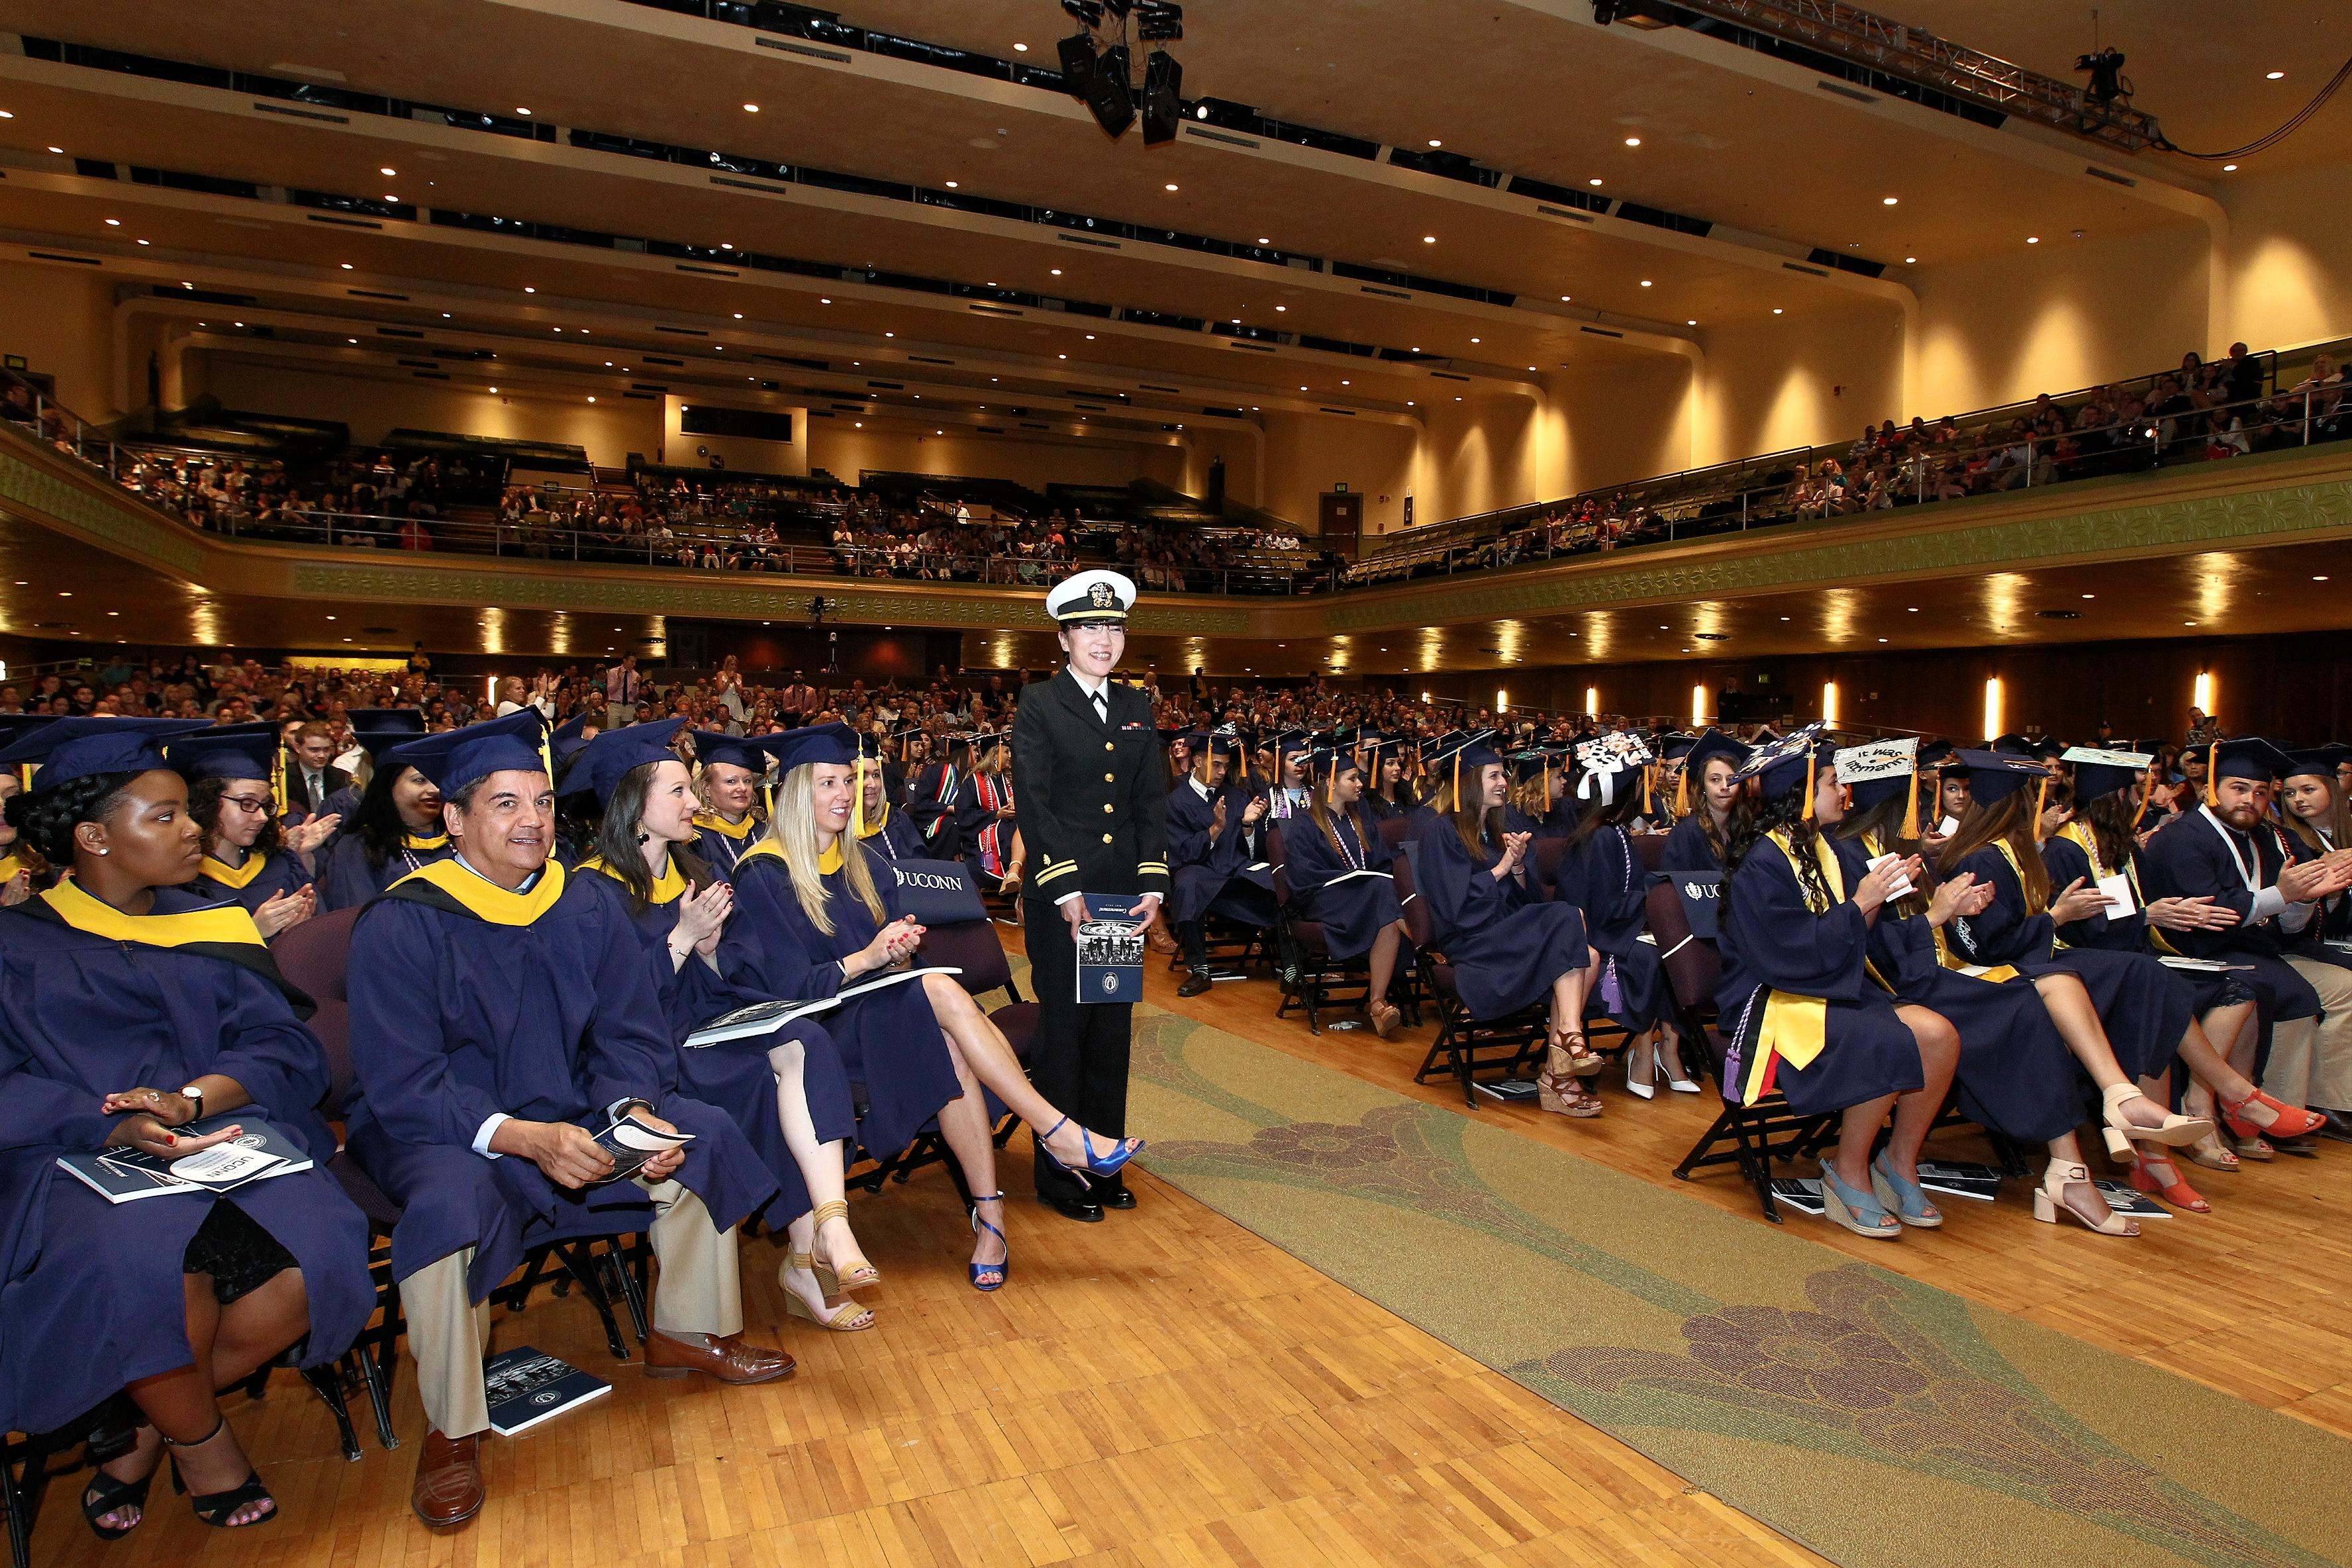 Student in navy uniform surrounded by other students at commencement